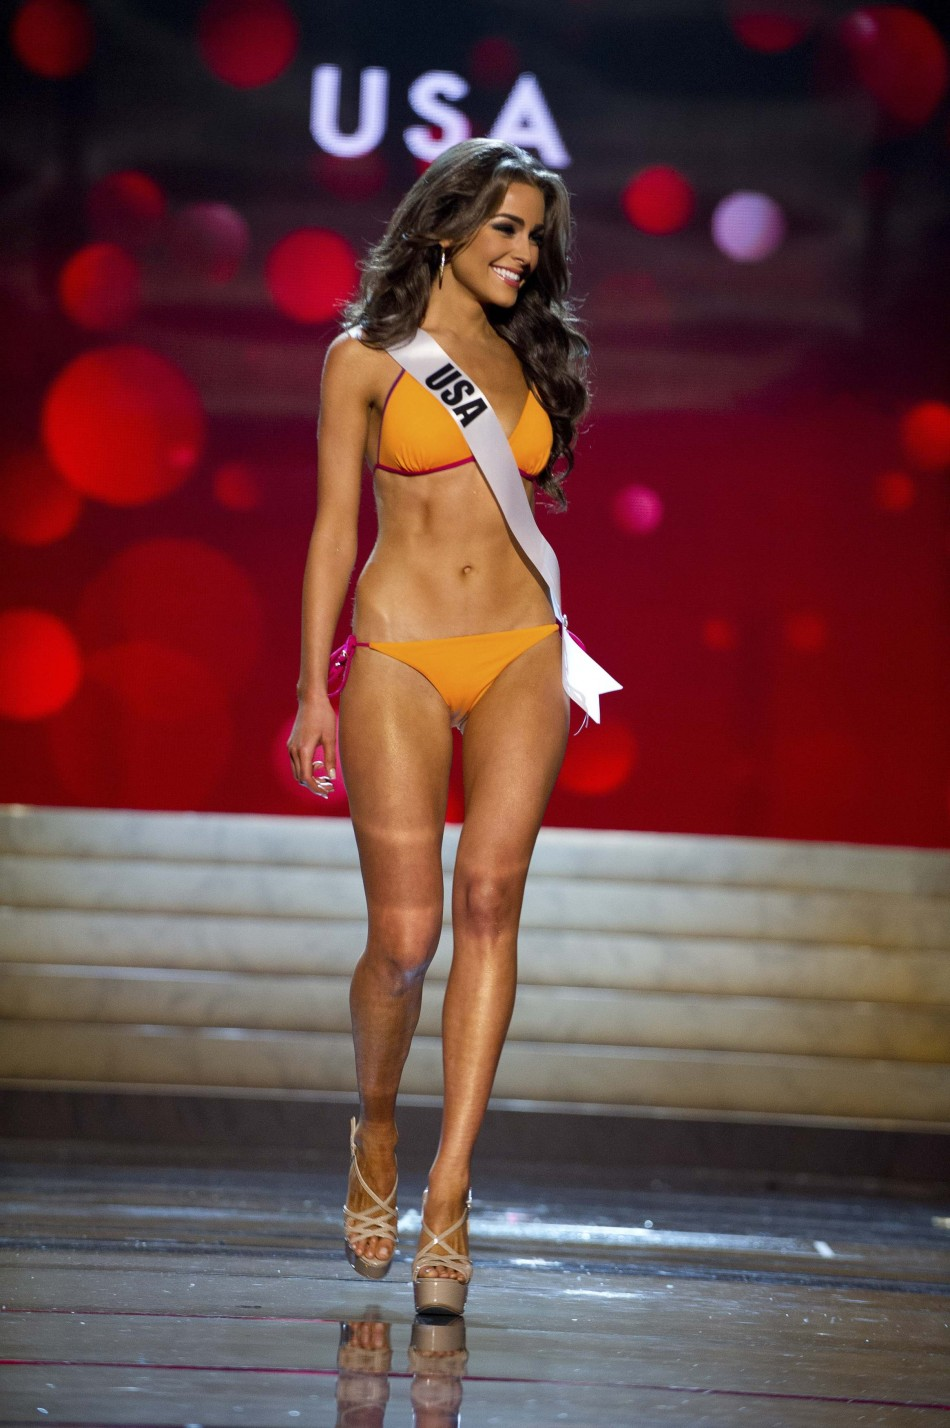 Miss Universe 2012: The Big Winners